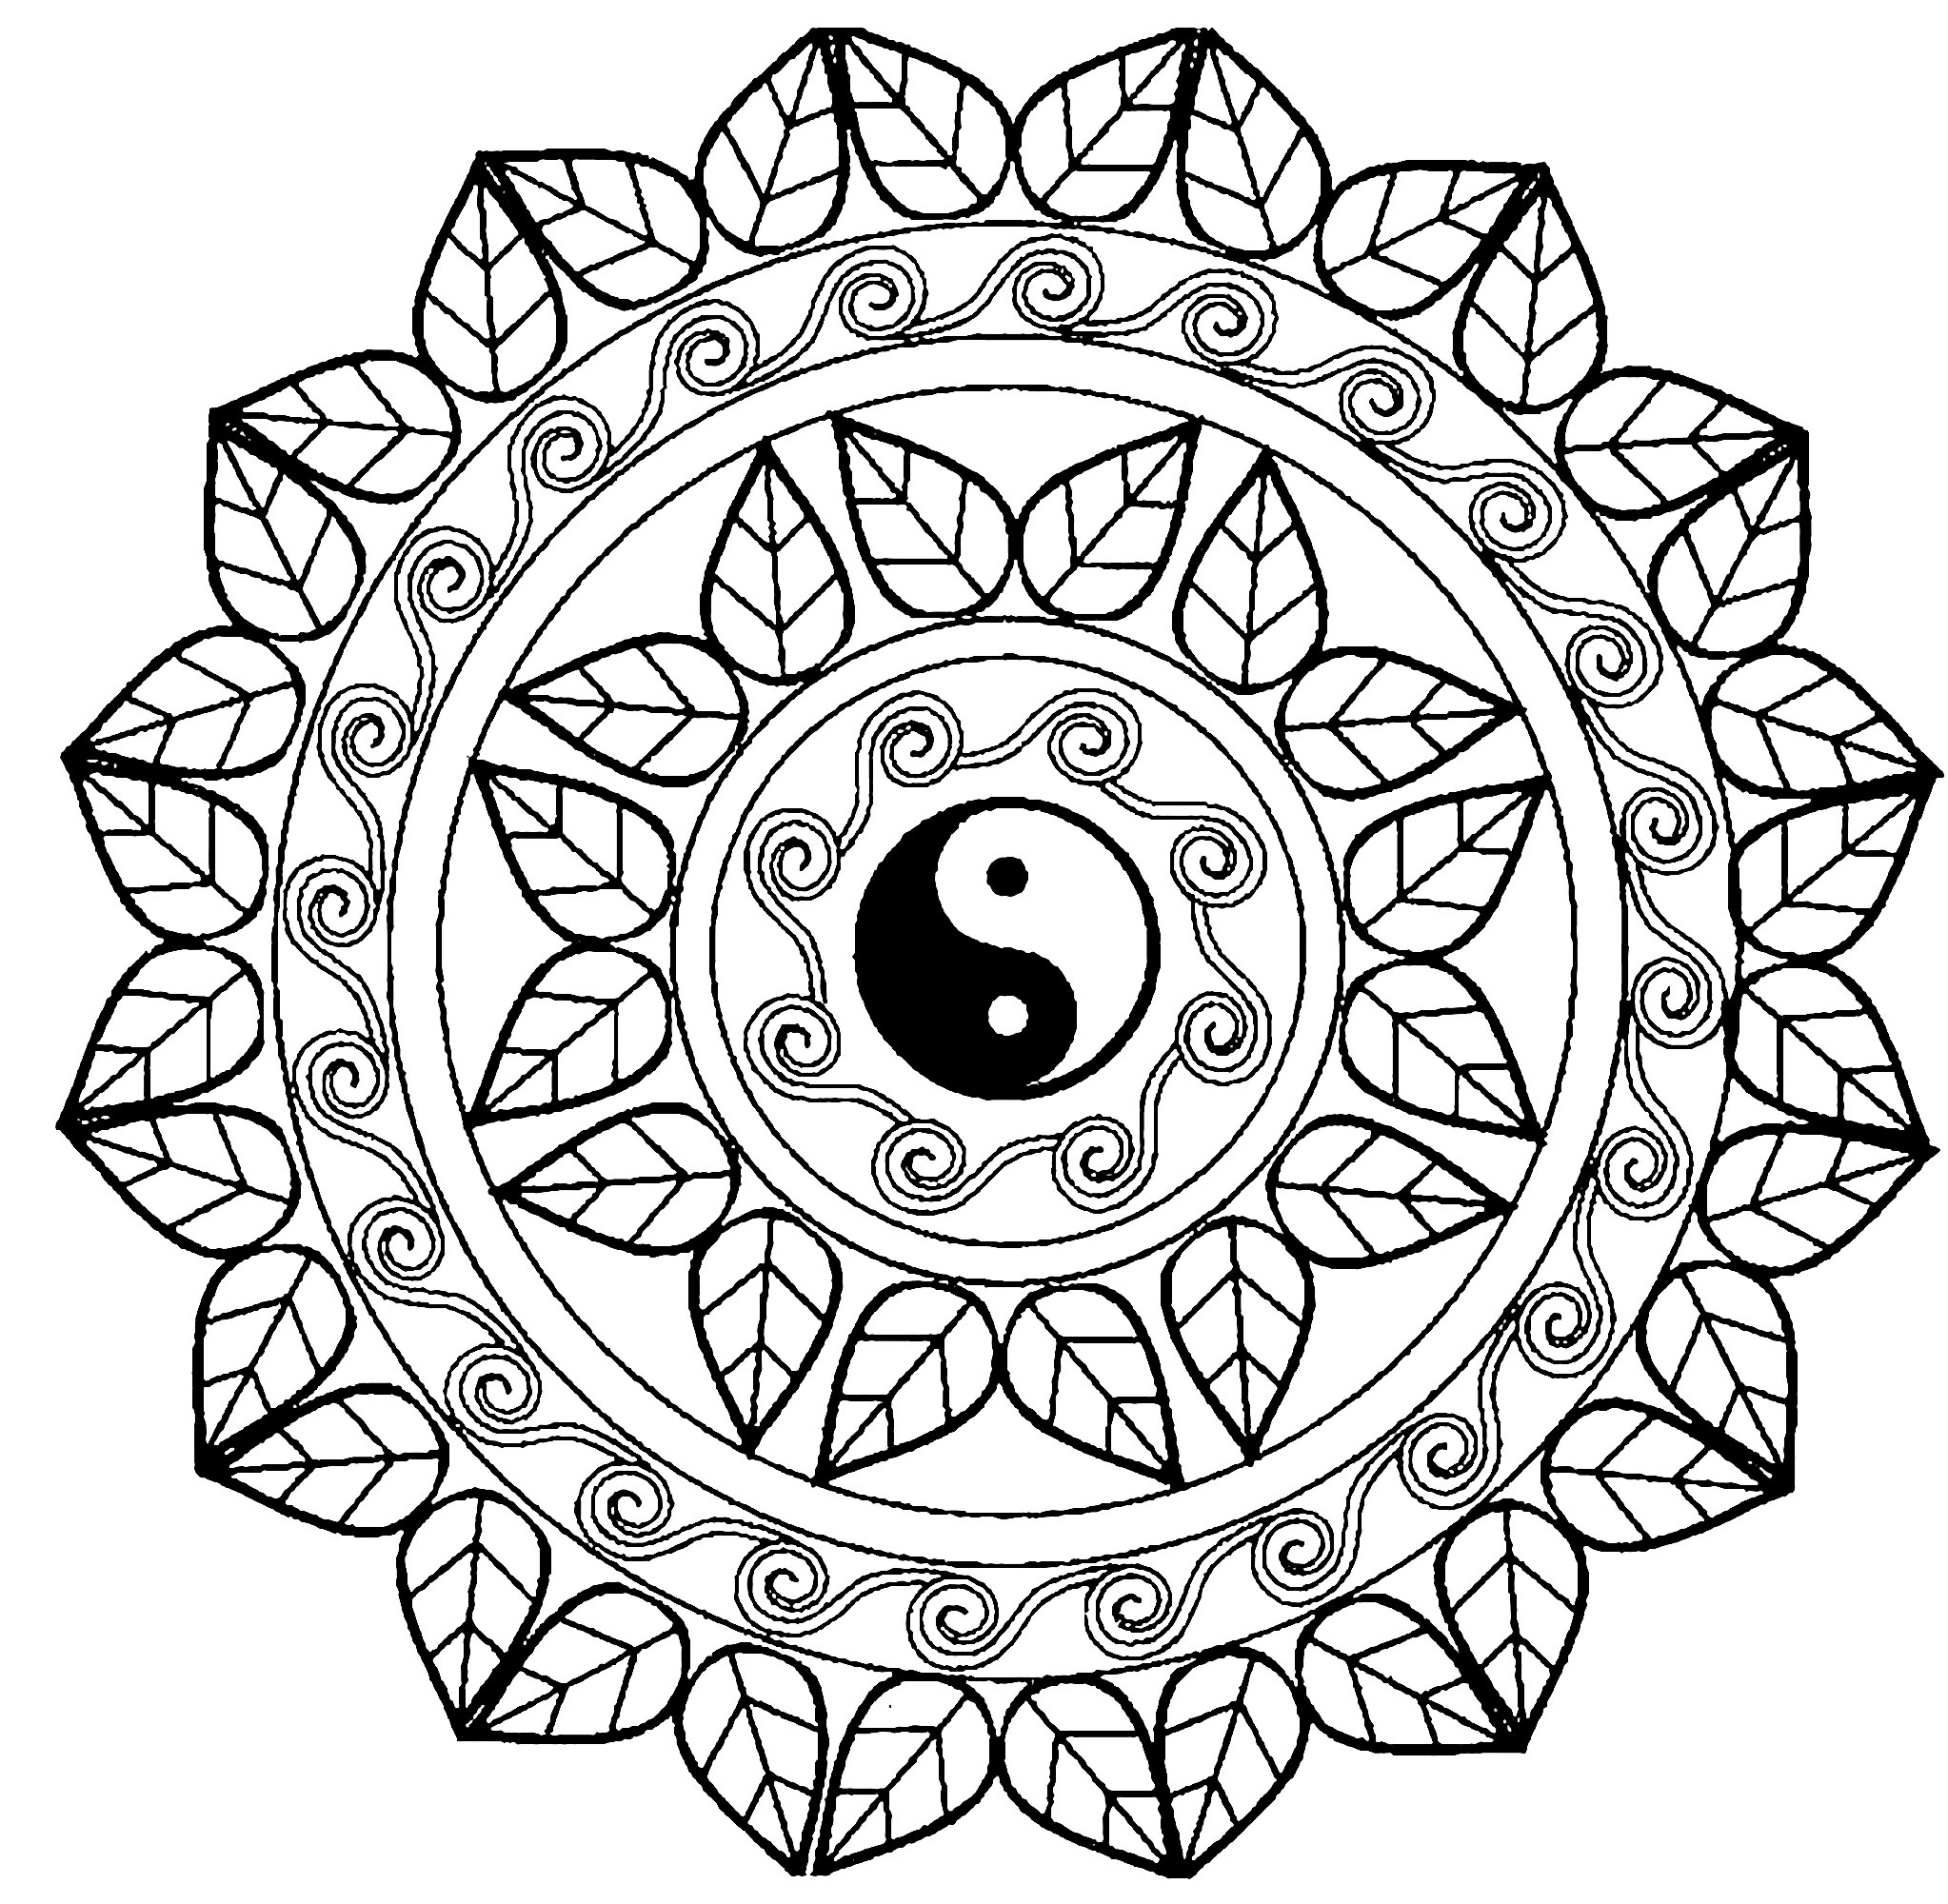 Mandala yin yang | Mandalas - Coloring pages for adults | JustColor